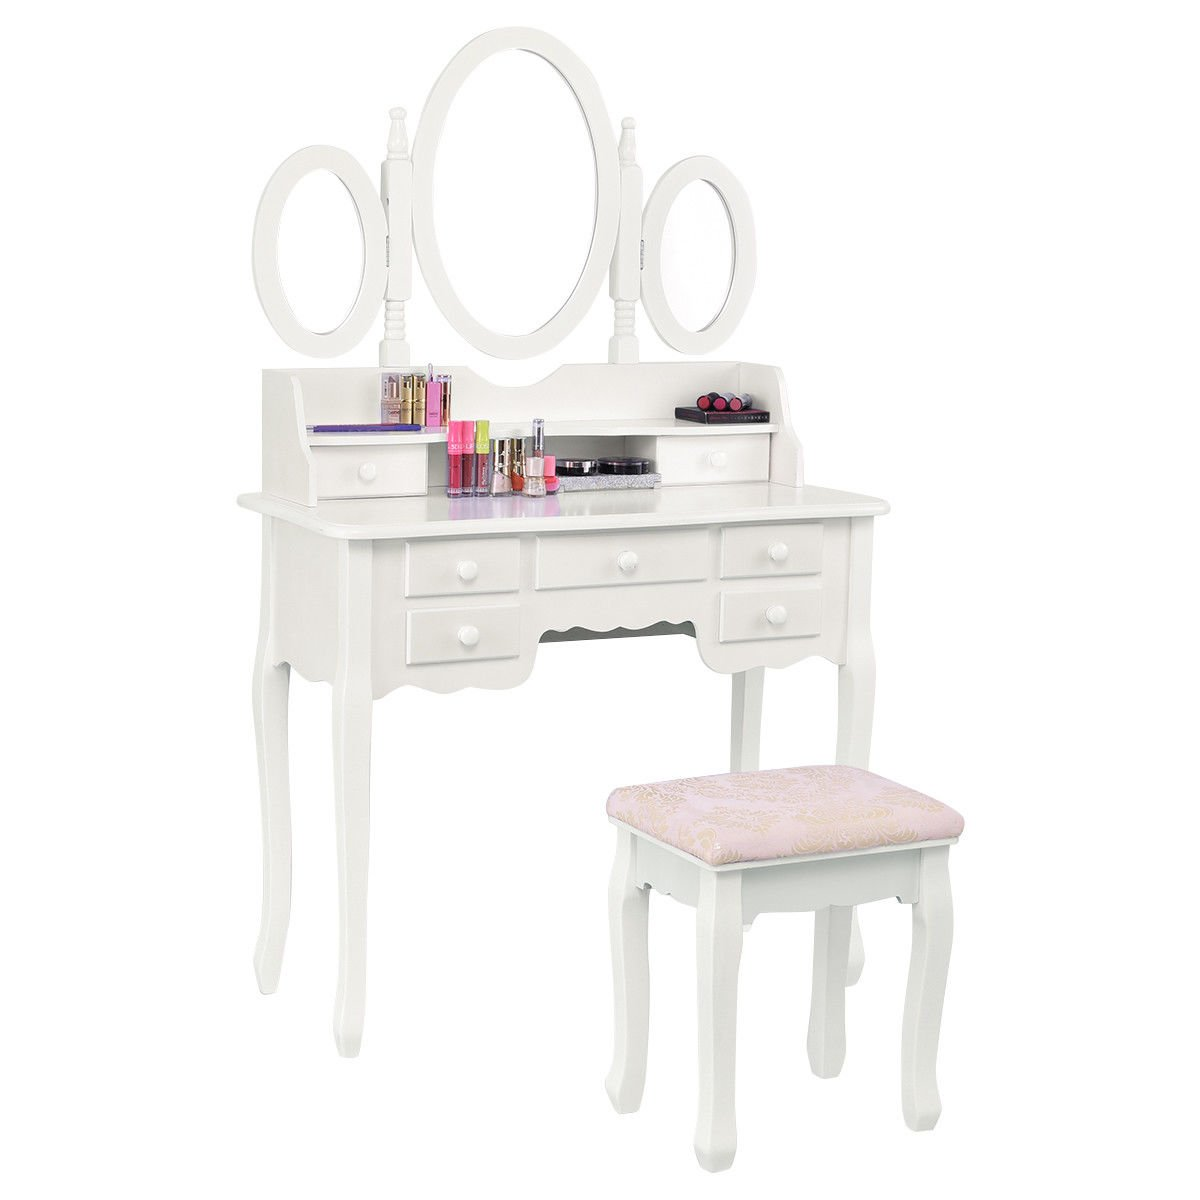 Giantex Vanity Set Tri-folding Mirror Soft Padded Bench with 7 Drawer 2 Dividers Make-up Dressing Table Vanity Table Set (White)